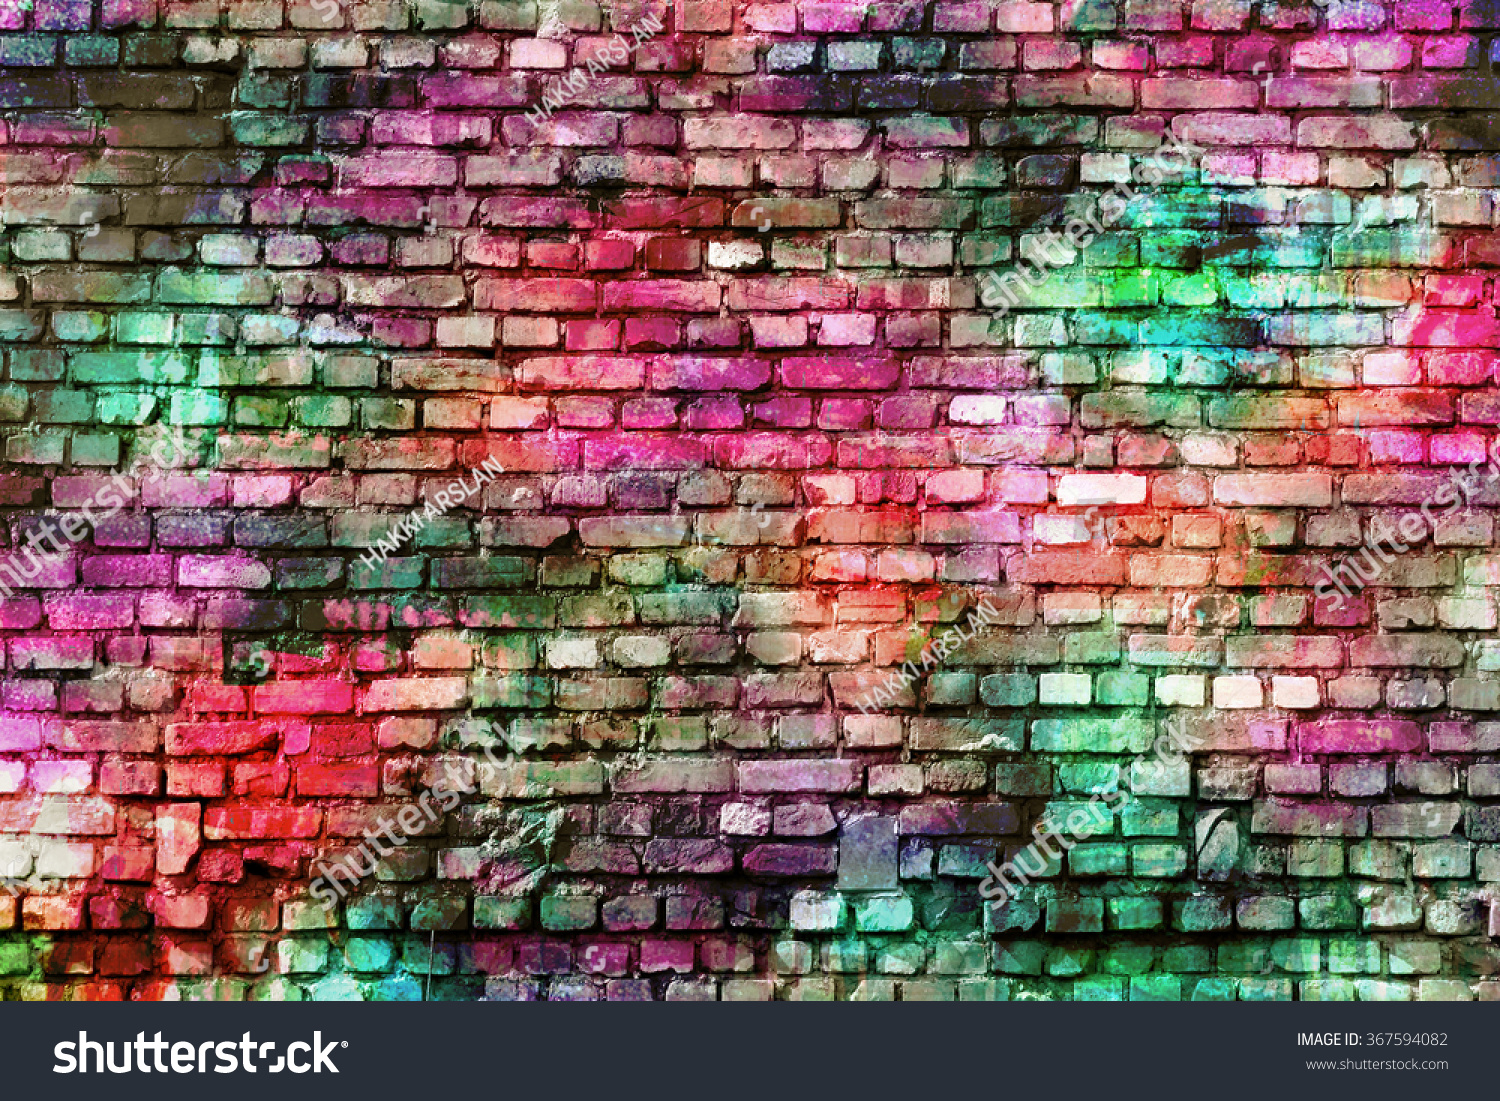 Colorful Wall Art, Inspirational Background Image.